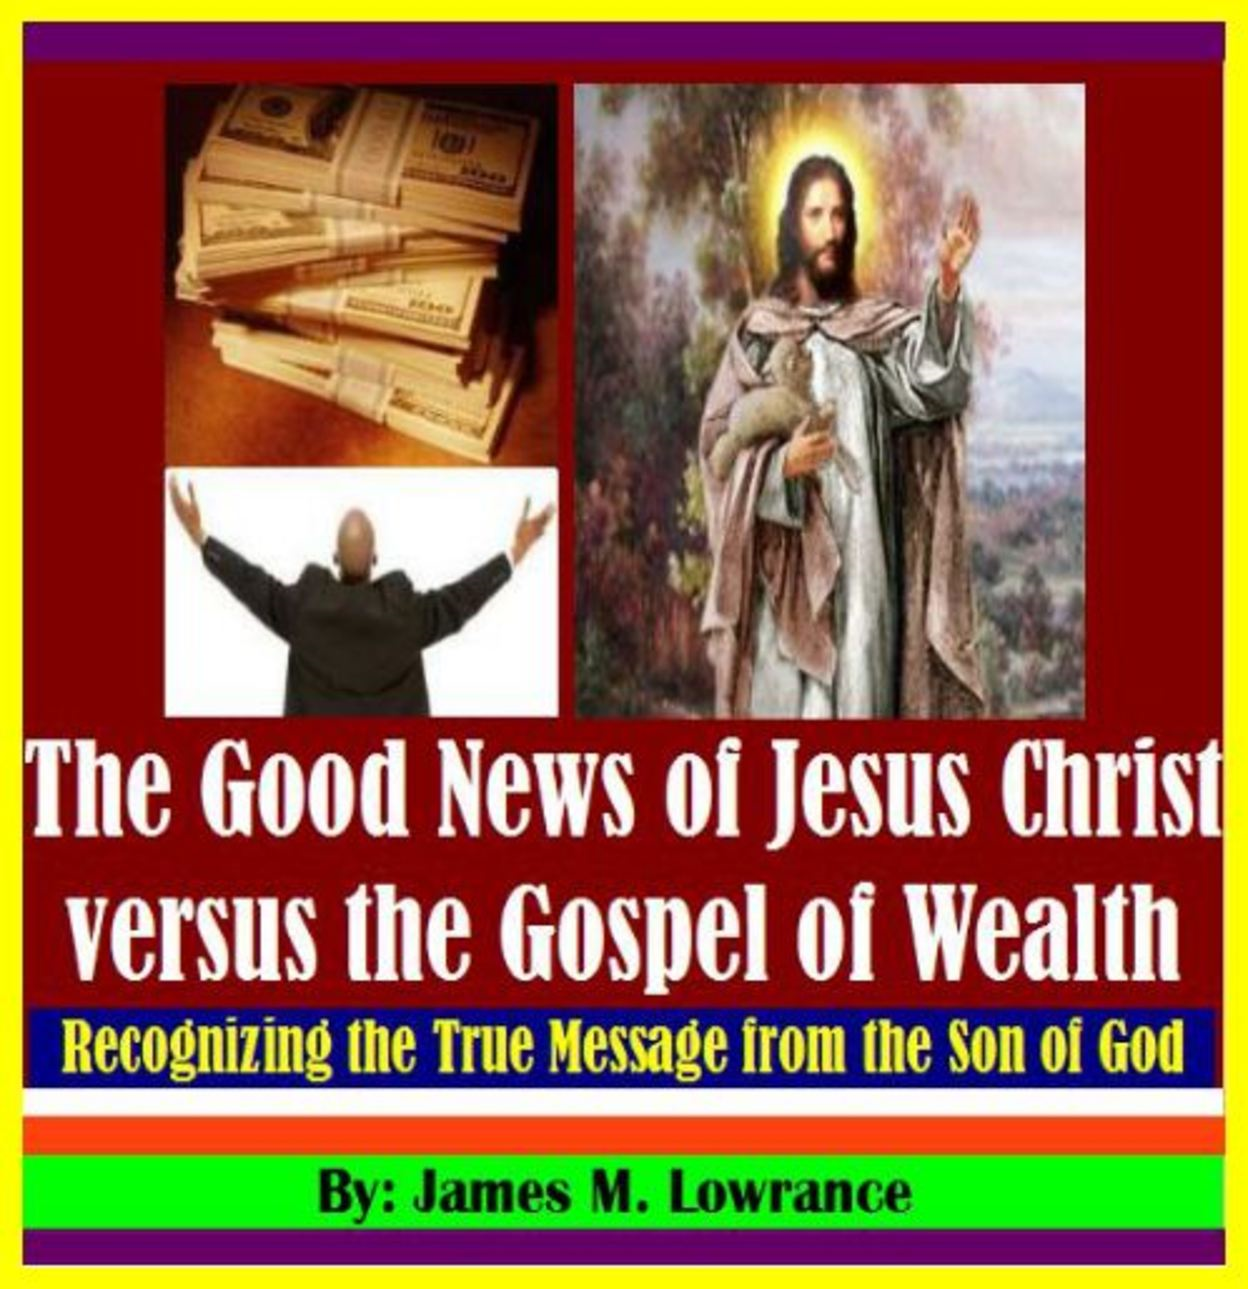 The Good News of Jesus Christ versus the Gospel of Wealth